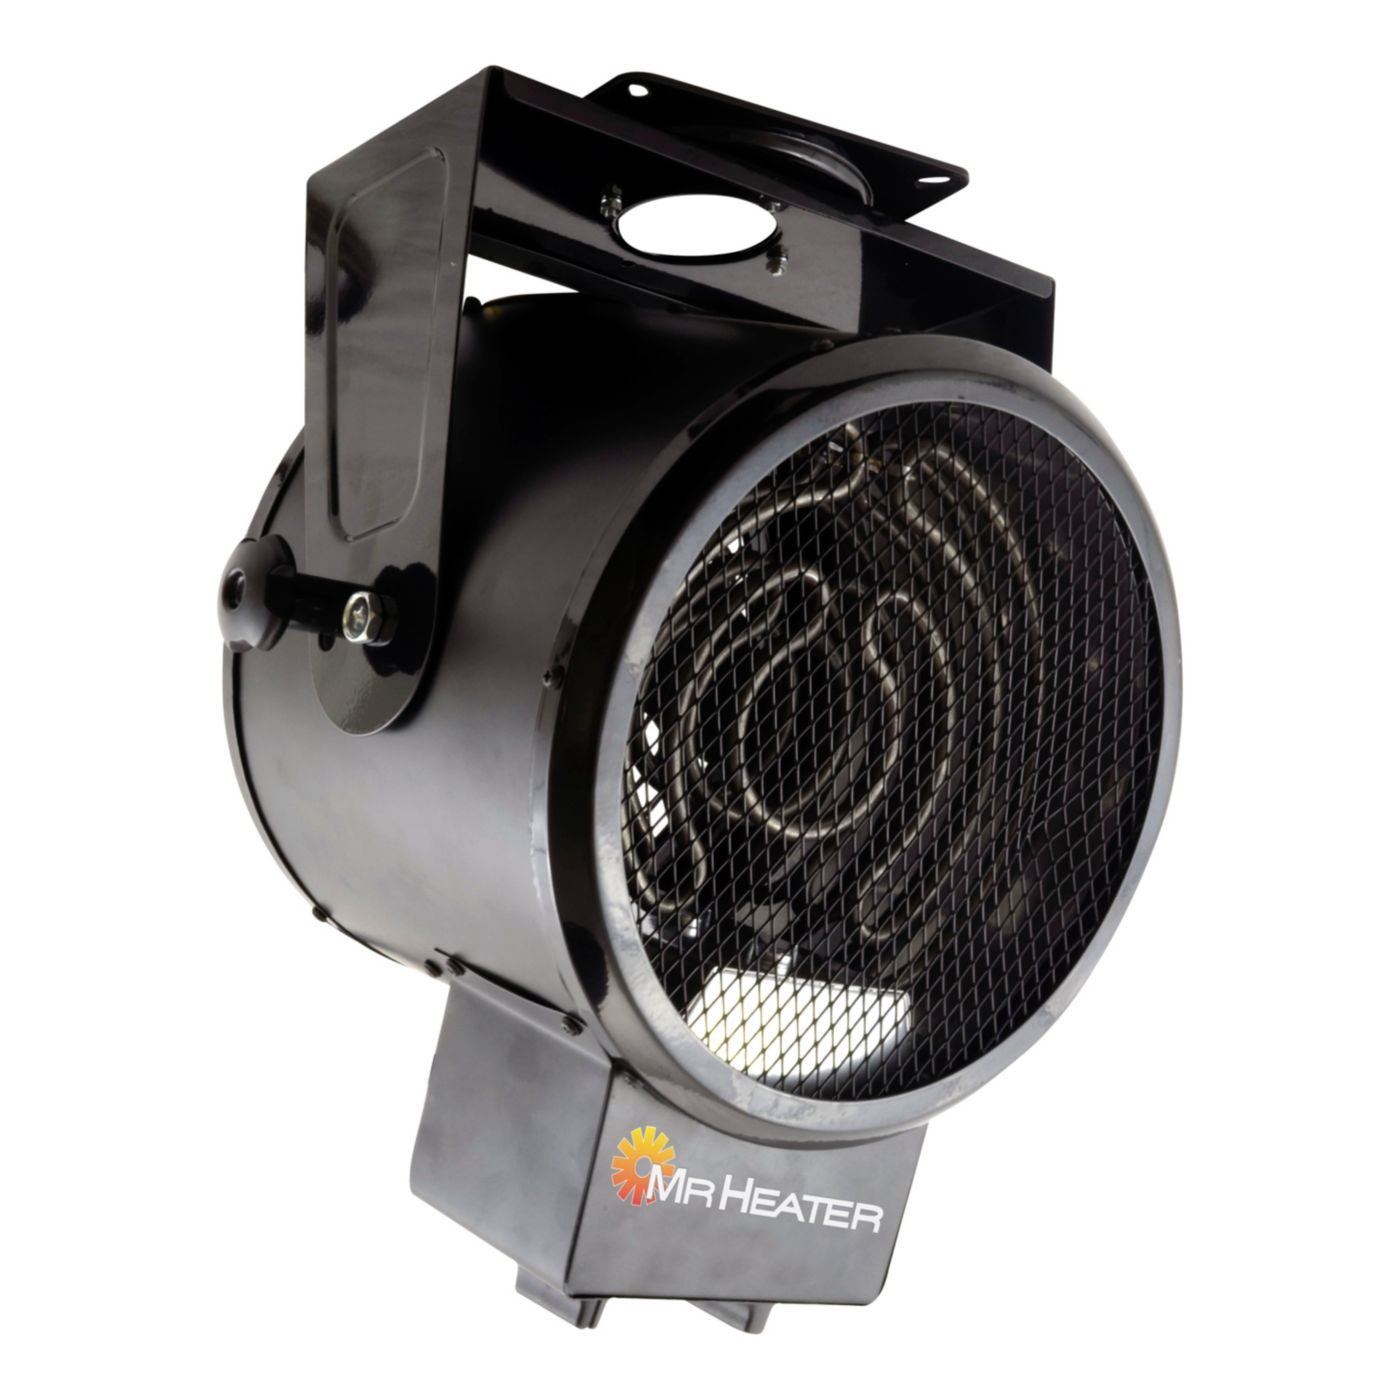 Mr. Heater 5.3Kw Portable Forced Air Electric Garage ...